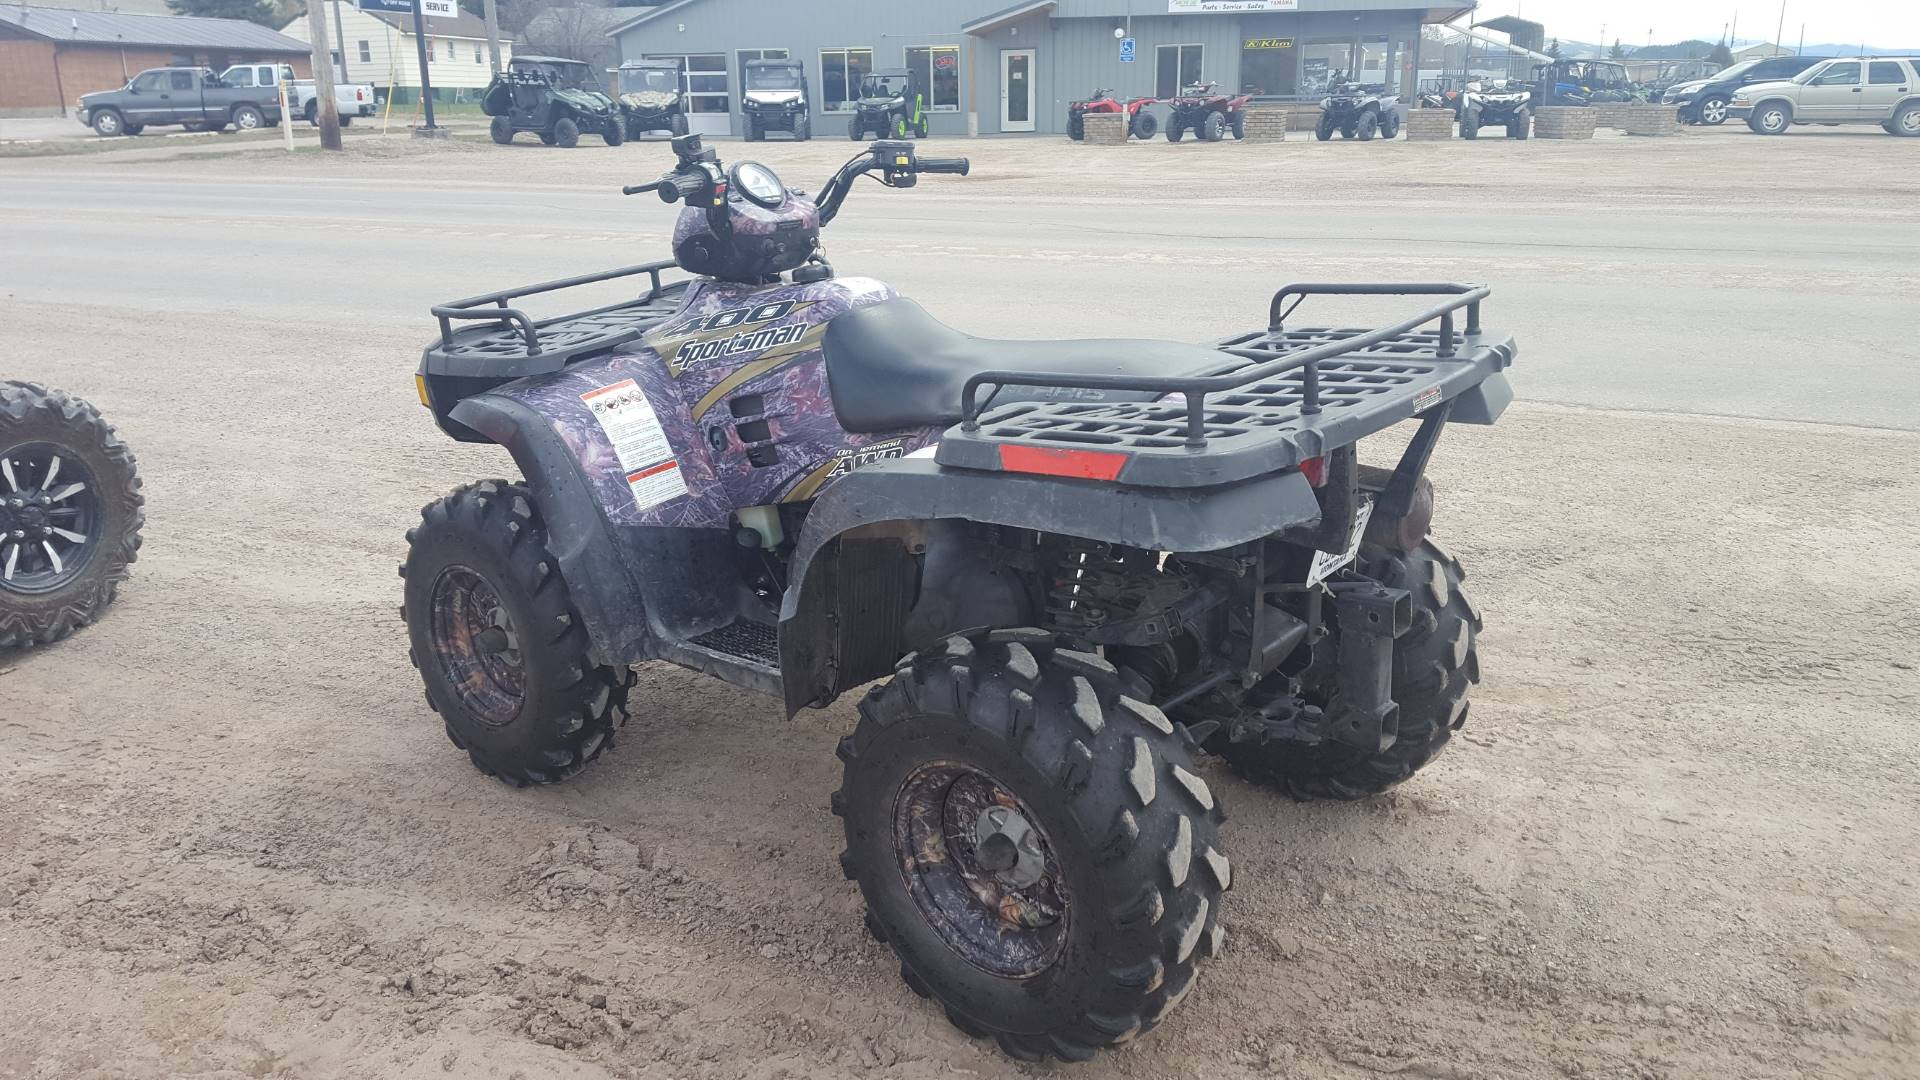 2004 Polaris Sportsman 400 in Philipsburg, Montana - Photo 2